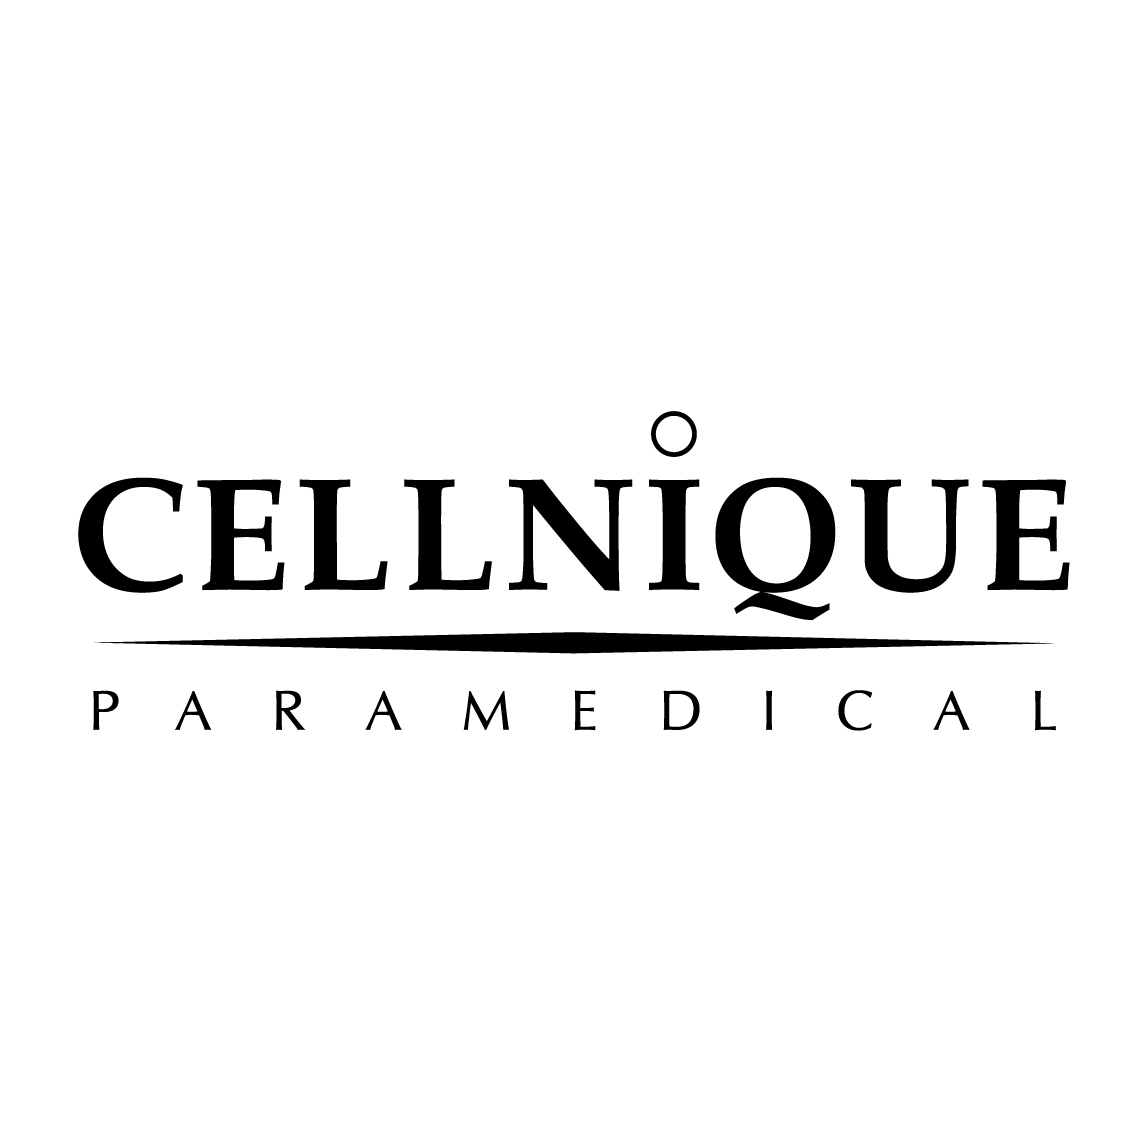 Cellnique logo1 - Homepage